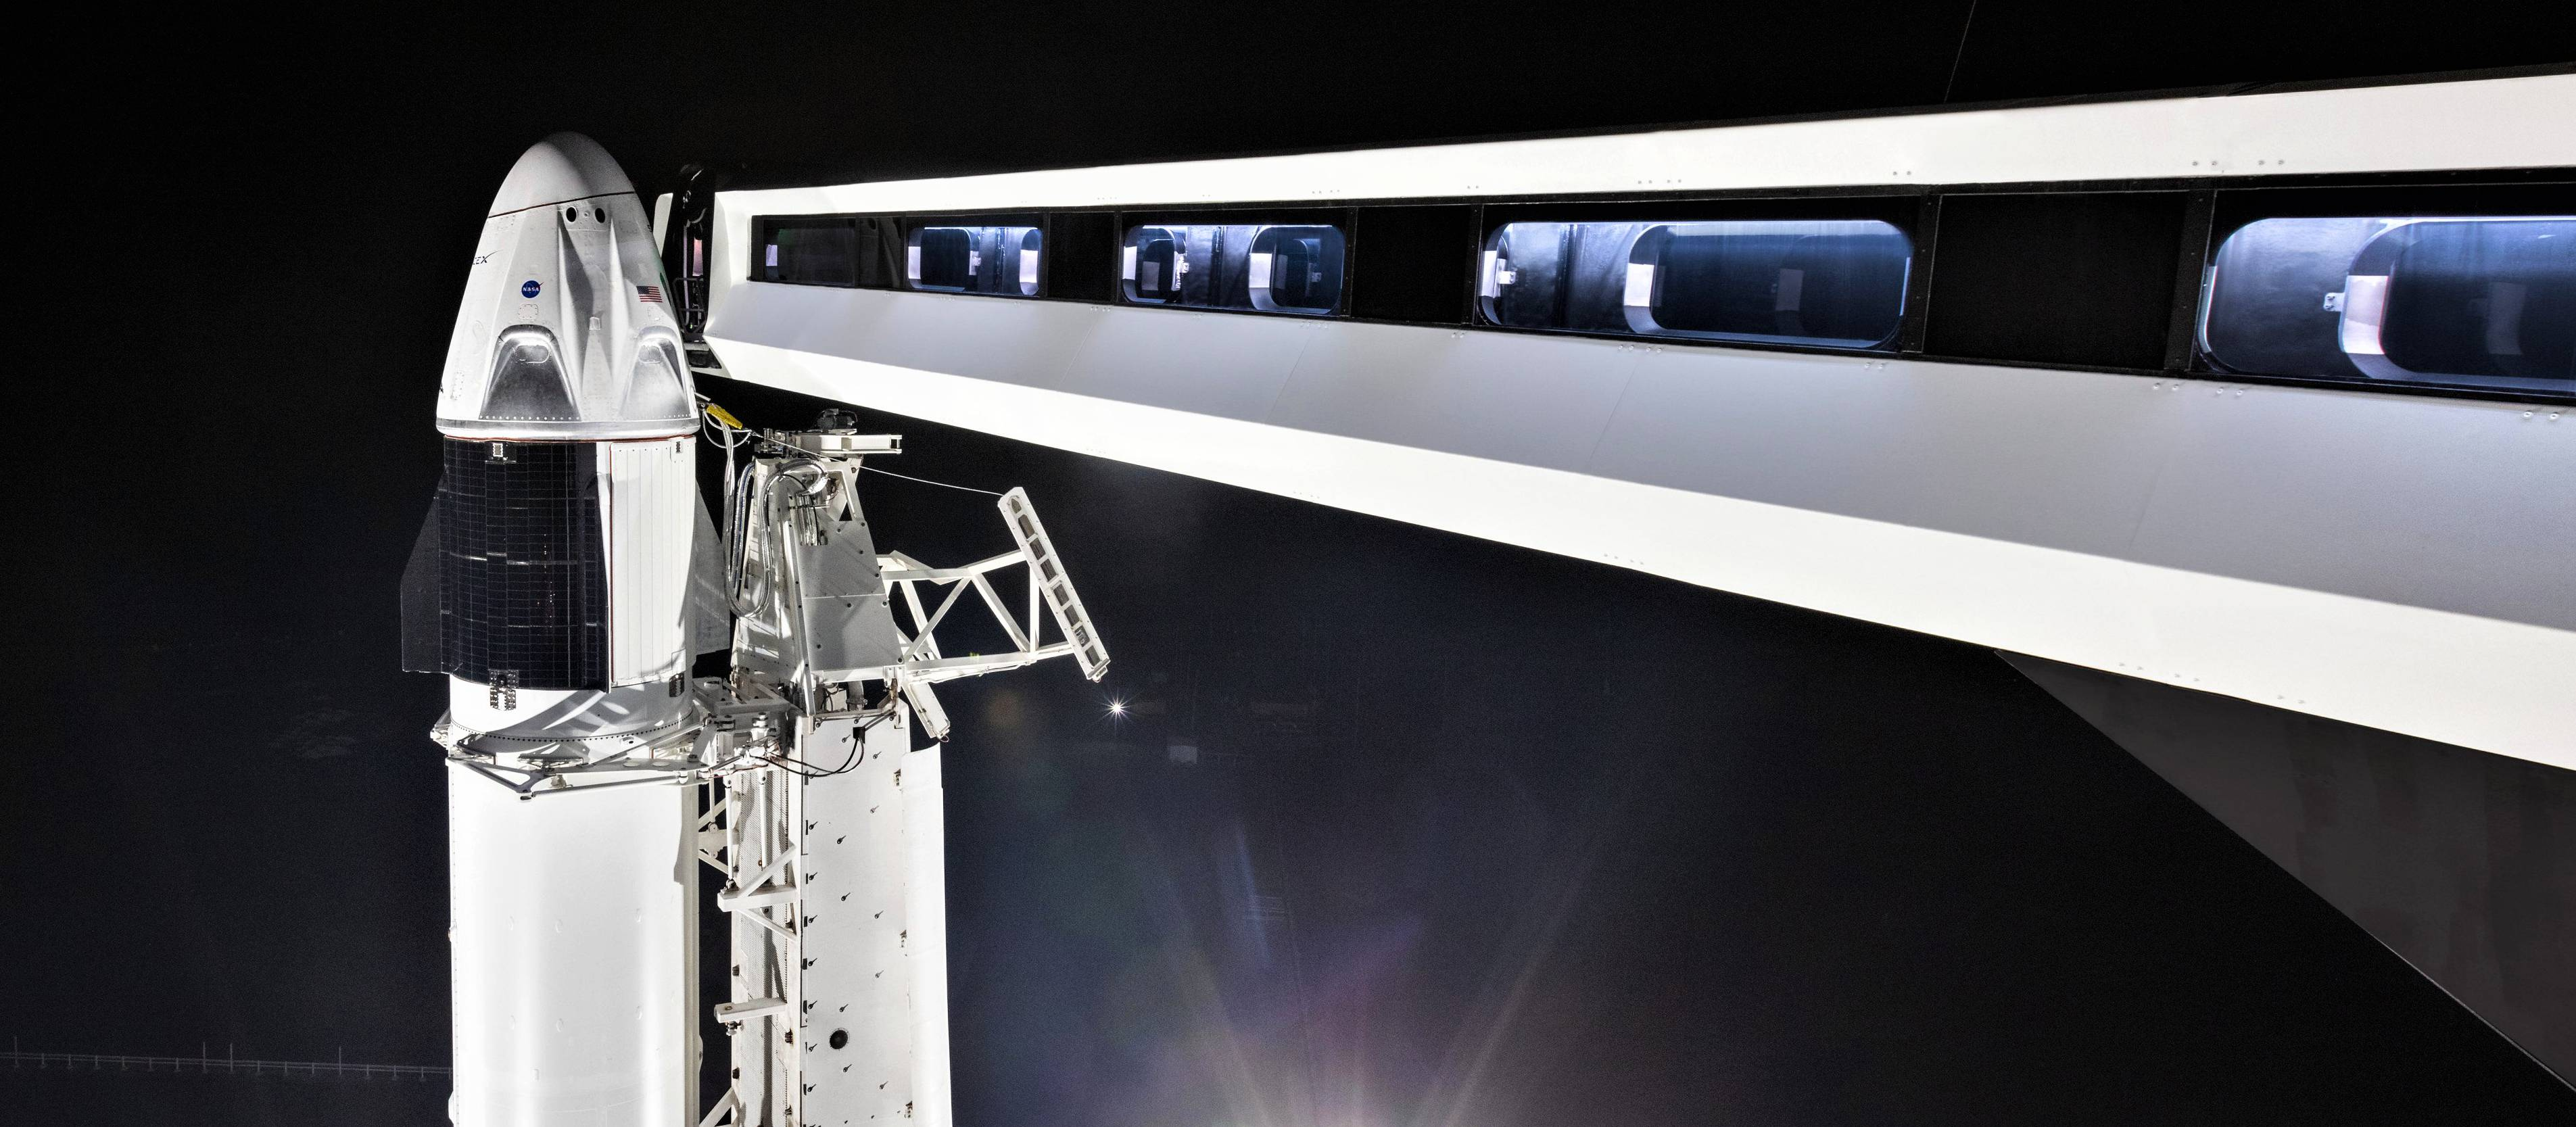 SpaceX given the go-ahead for Crew Dragon's first journey into Earth orbit